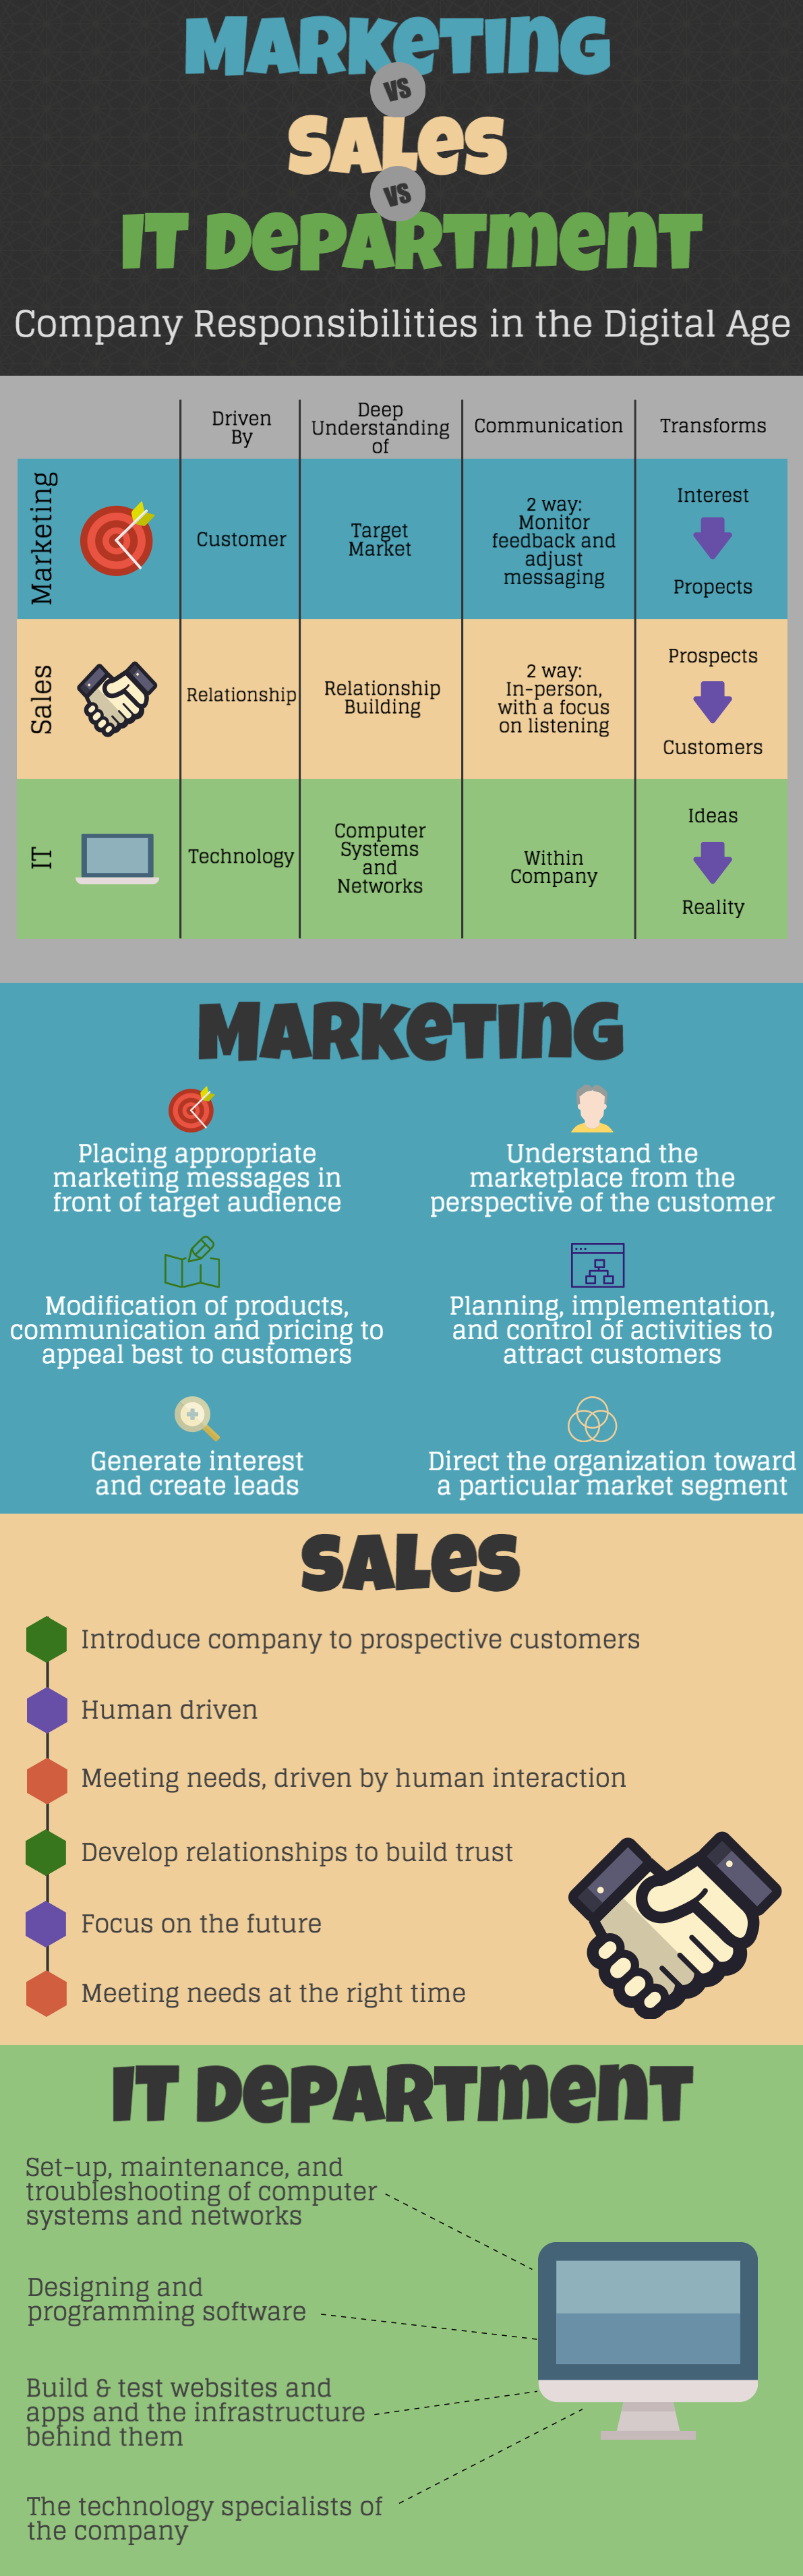 marketing-sales-it-infographic